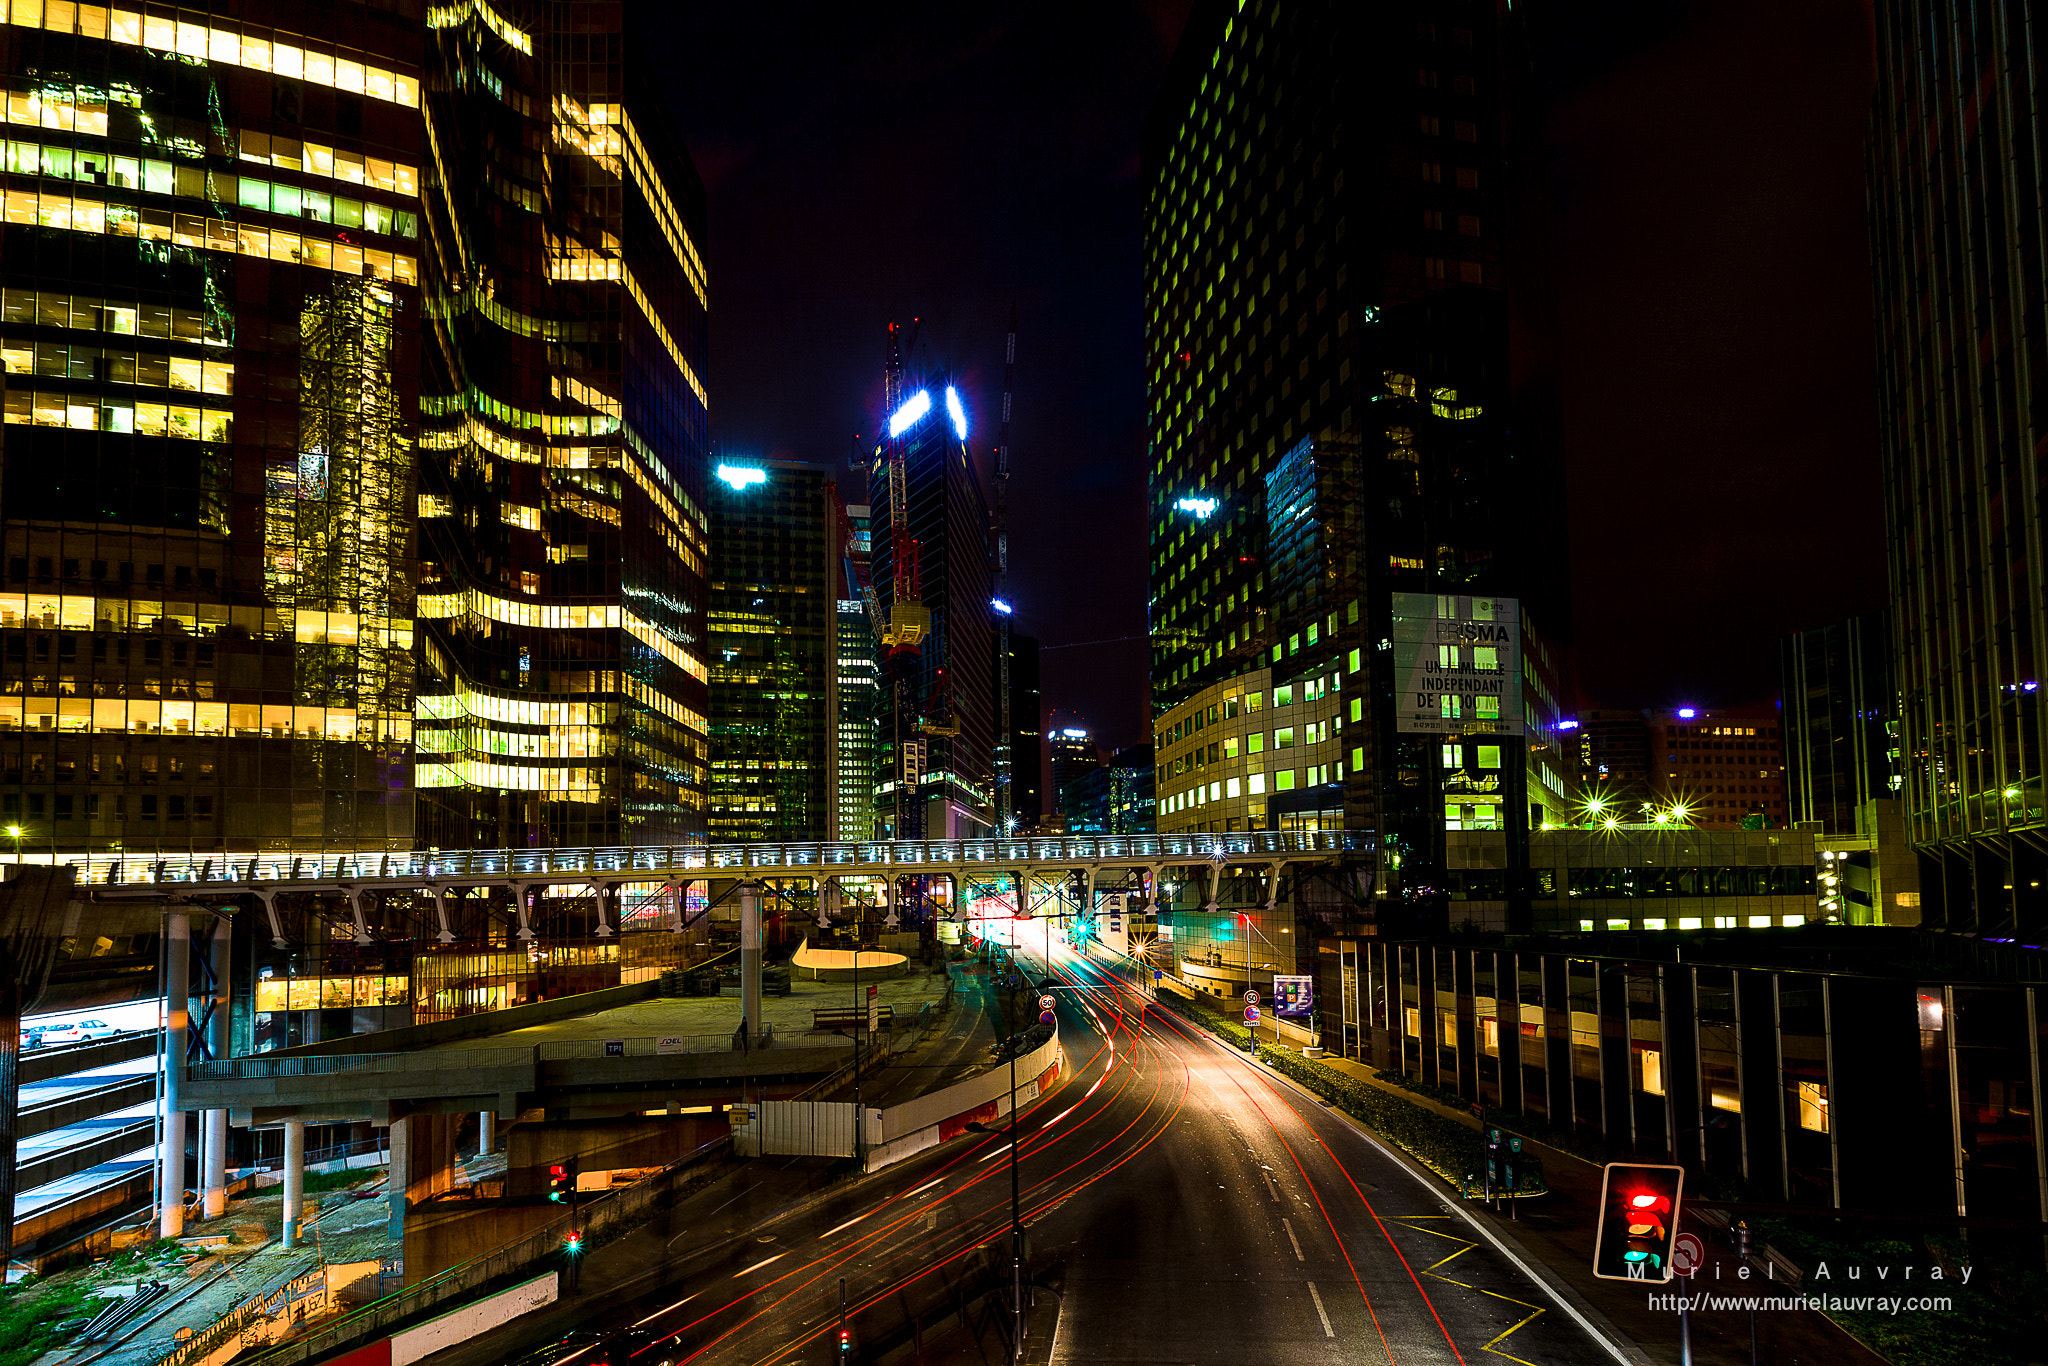 Photograph La Défense by Muriel Auvray on 500px